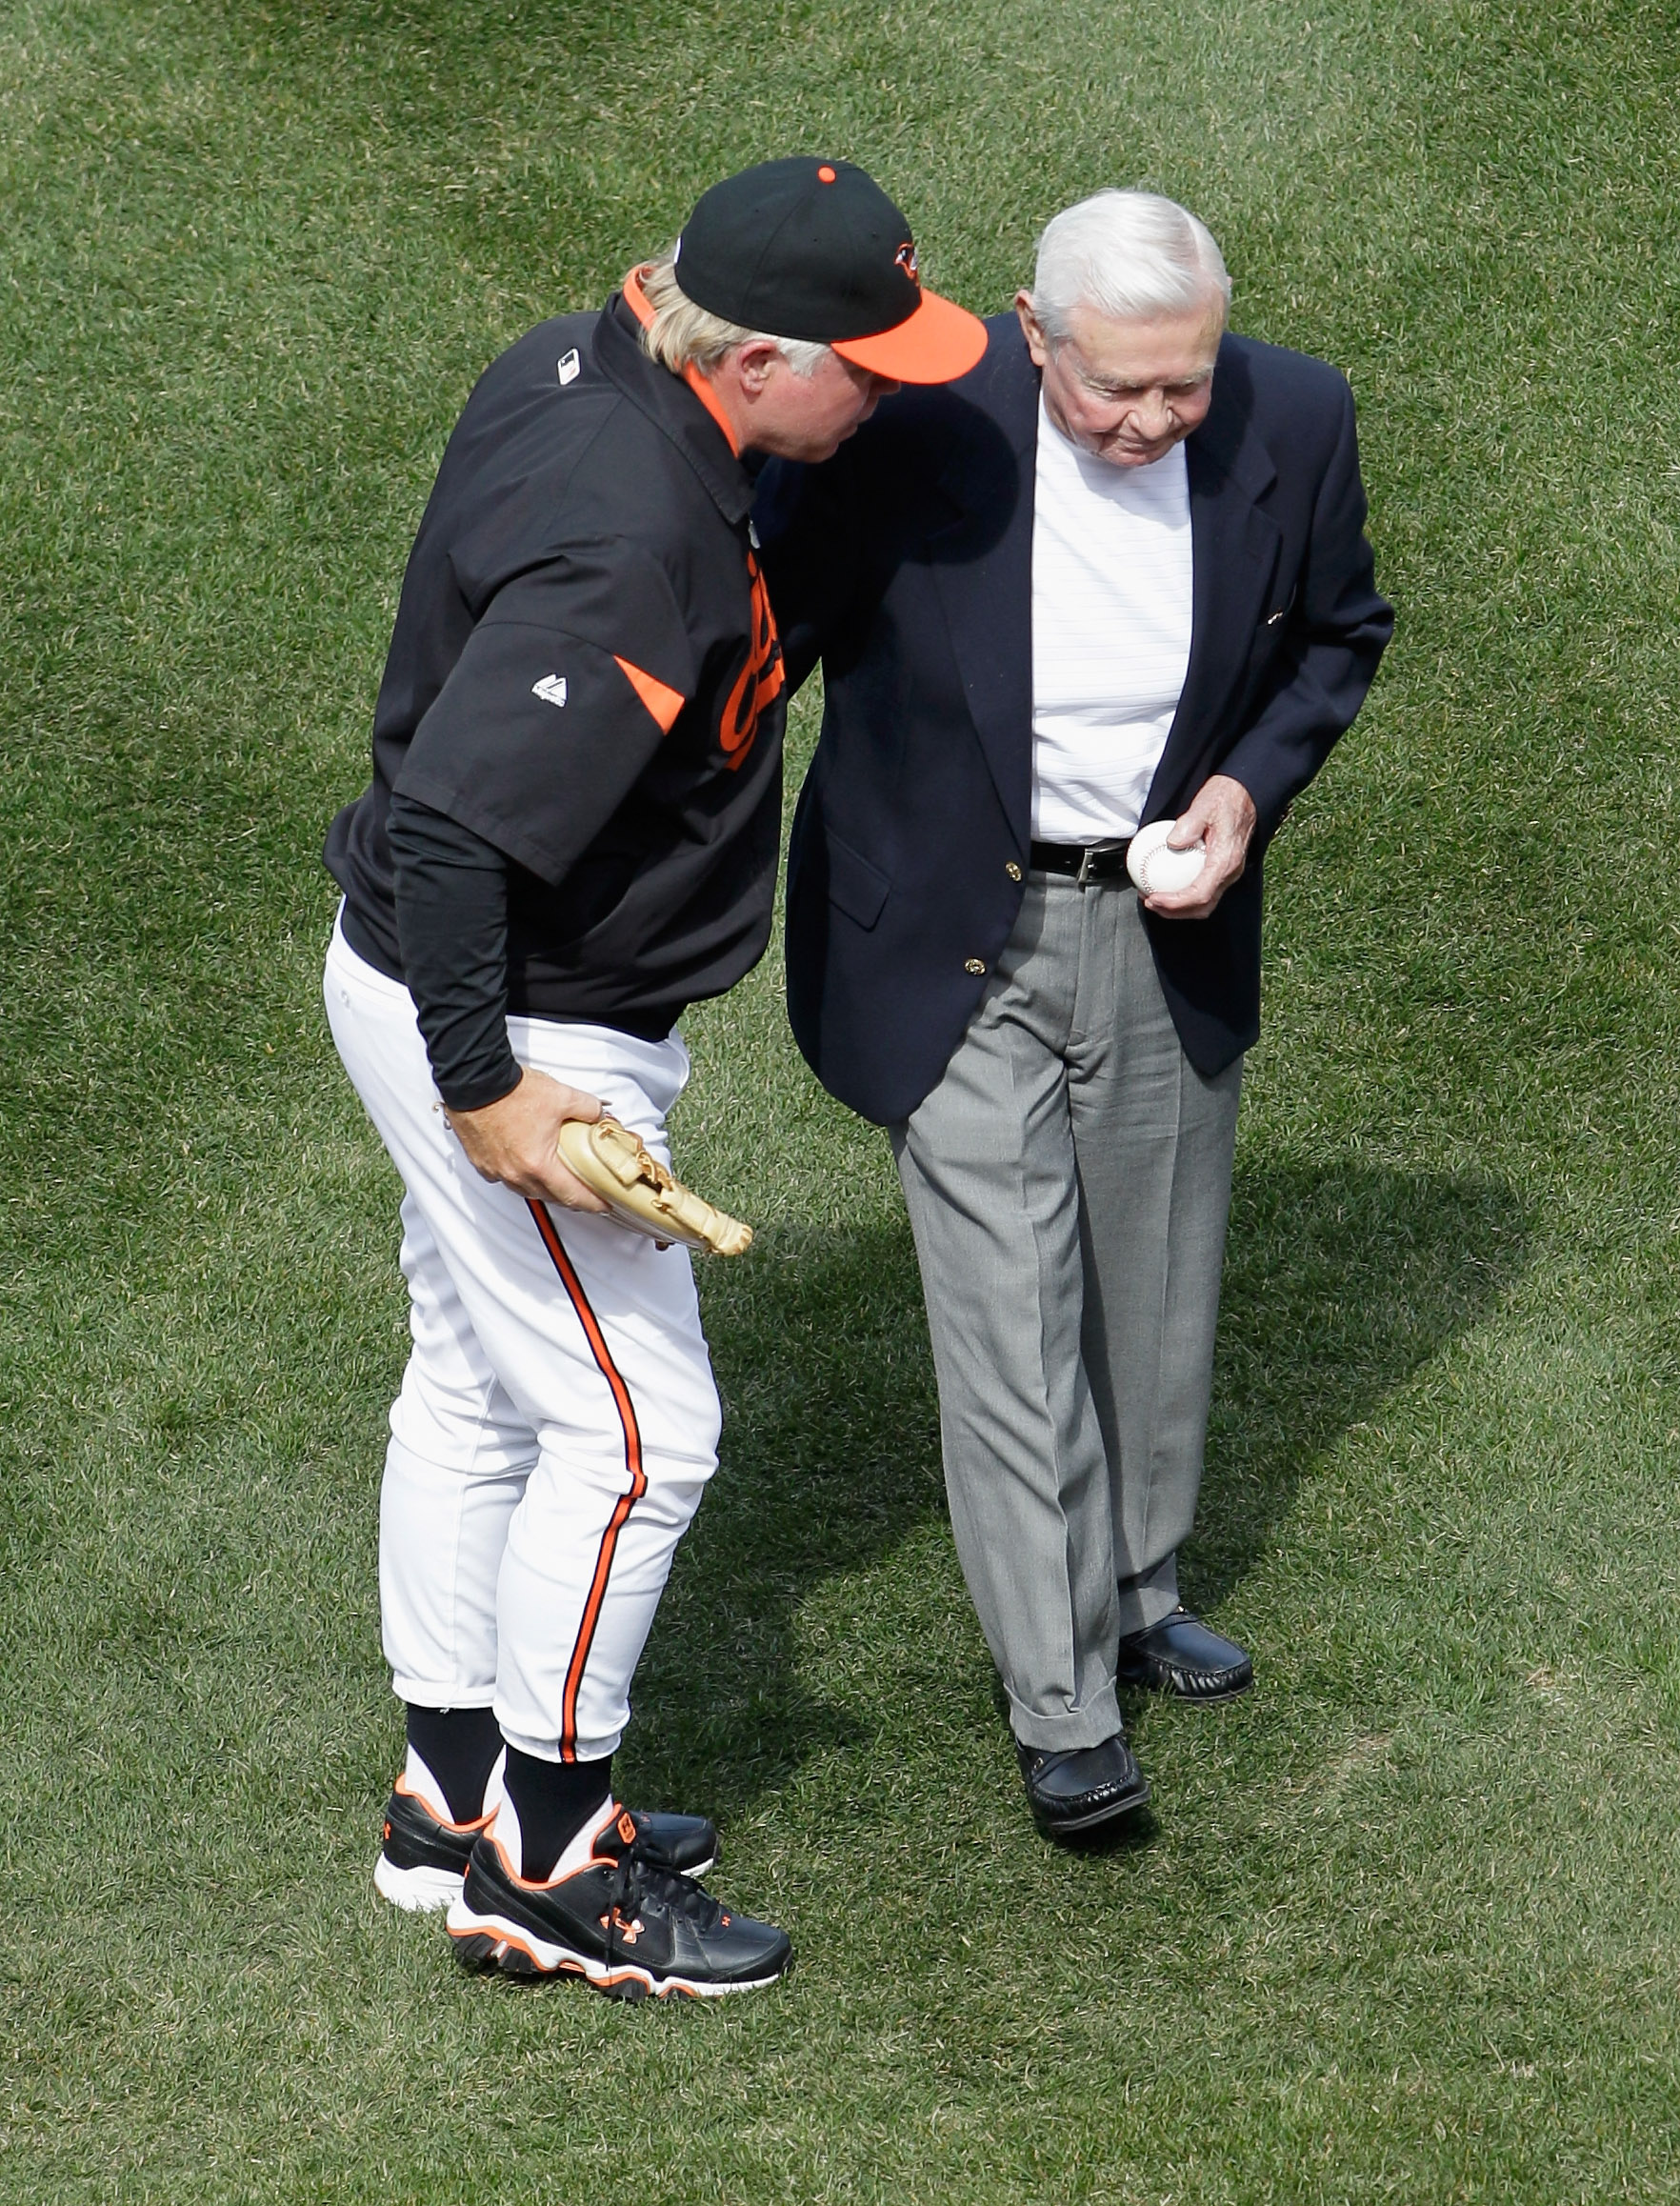 BALTIMORE, MD - APRIL 04: Buck Showalter #26 manager of the Baltimore Orioles talks with former Orioles manager Earl Weaver (R) after Weaver threw out the ceremonial first pitch before the start of their game against the Detroit Tigers  during opening day